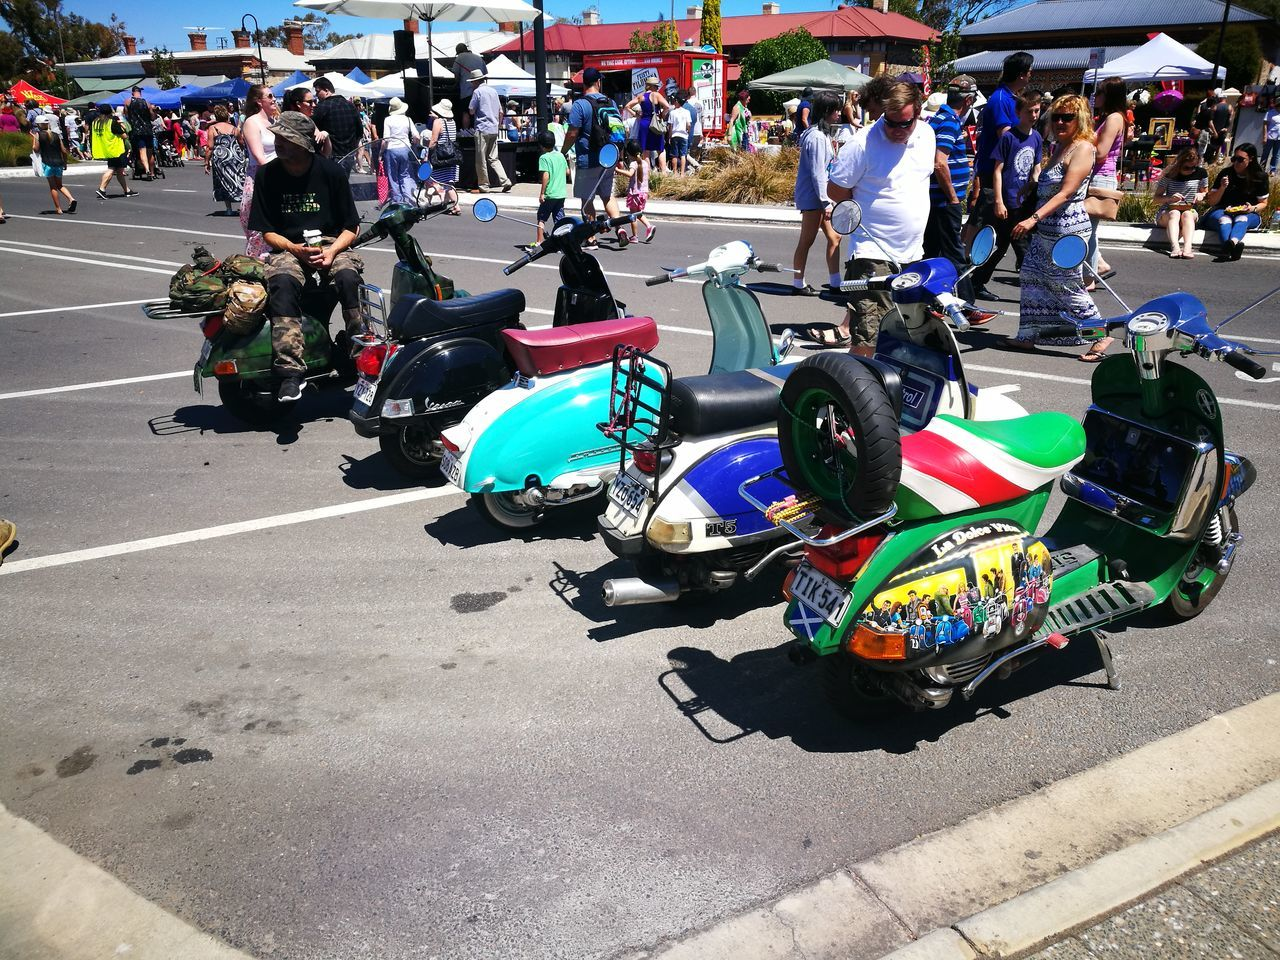 real people, large group of people, transportation, motorcycle, outdoors, day, street, land vehicle, men, women, sunlight, lifestyles, sitting, crowd, city, people